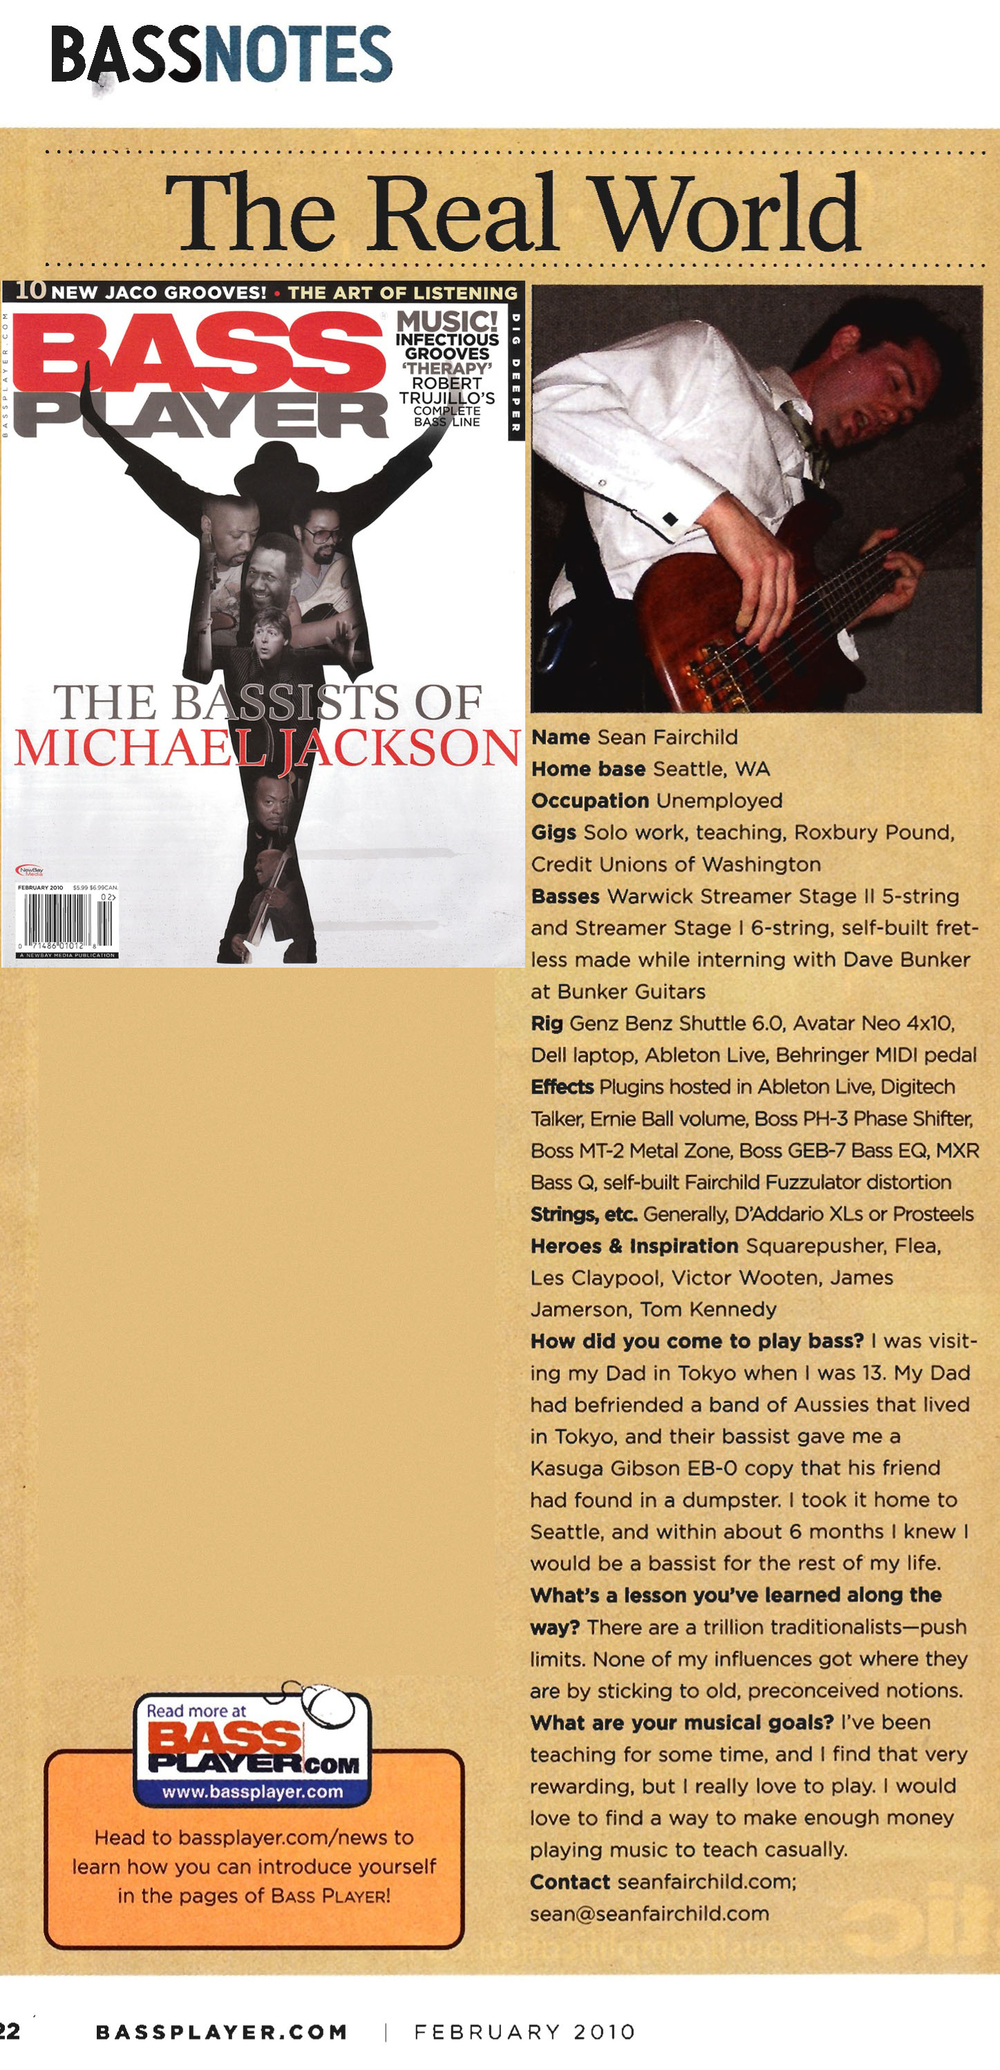 Bass Player Magazine Reader Spotlight feature